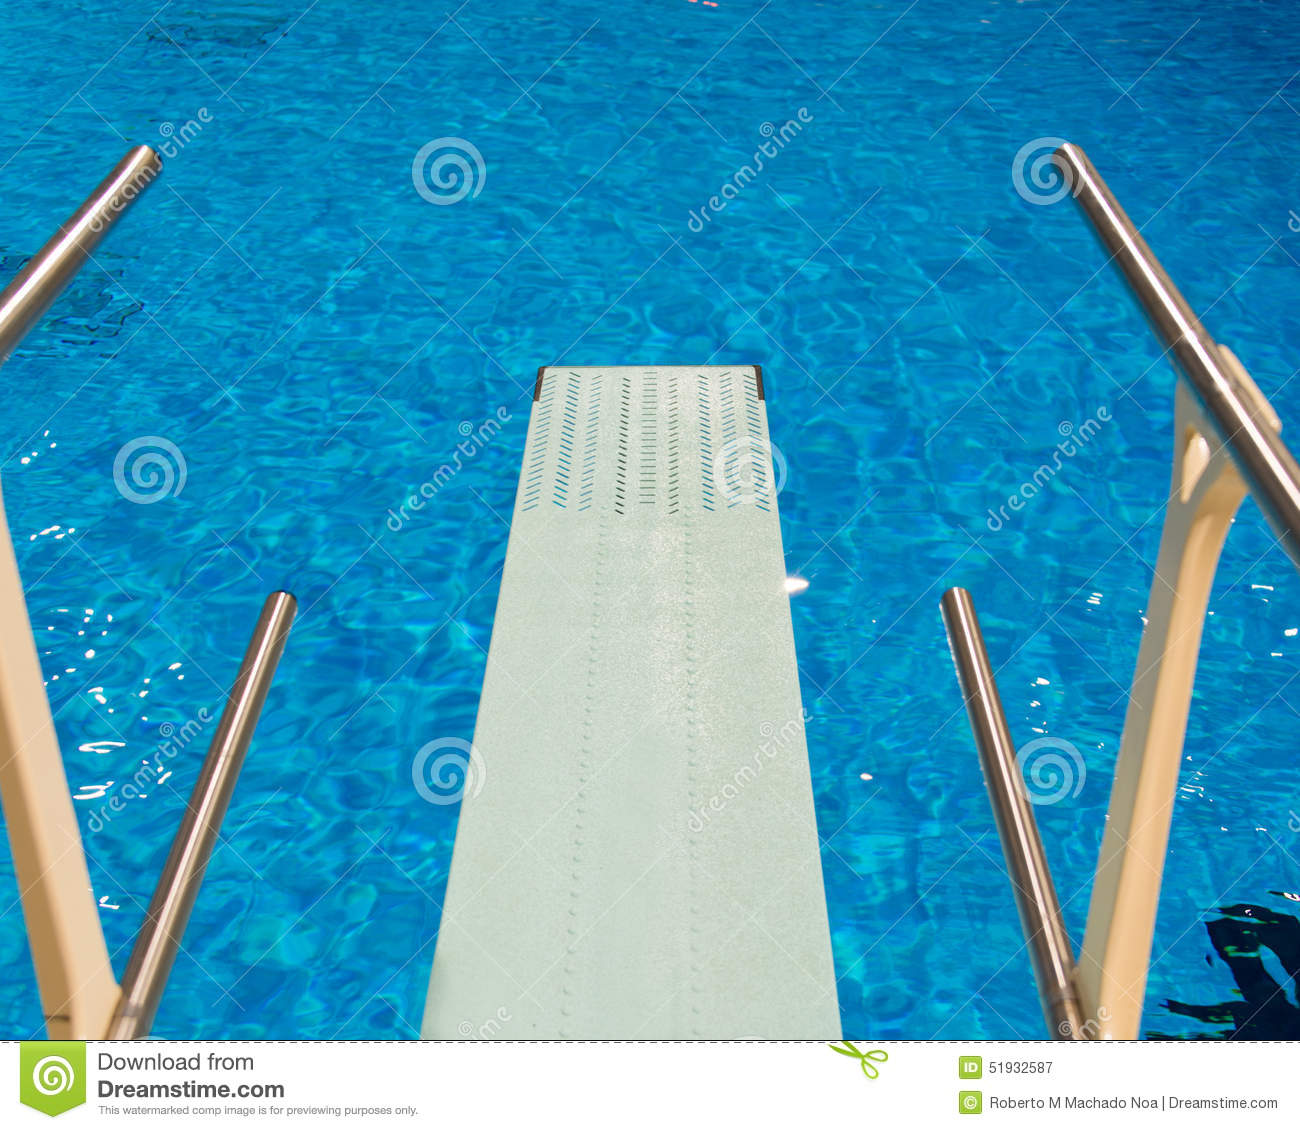 Olympic Swimming Pool In Person: Olympic Diving Pool Seen From Trampoline Stock Photo